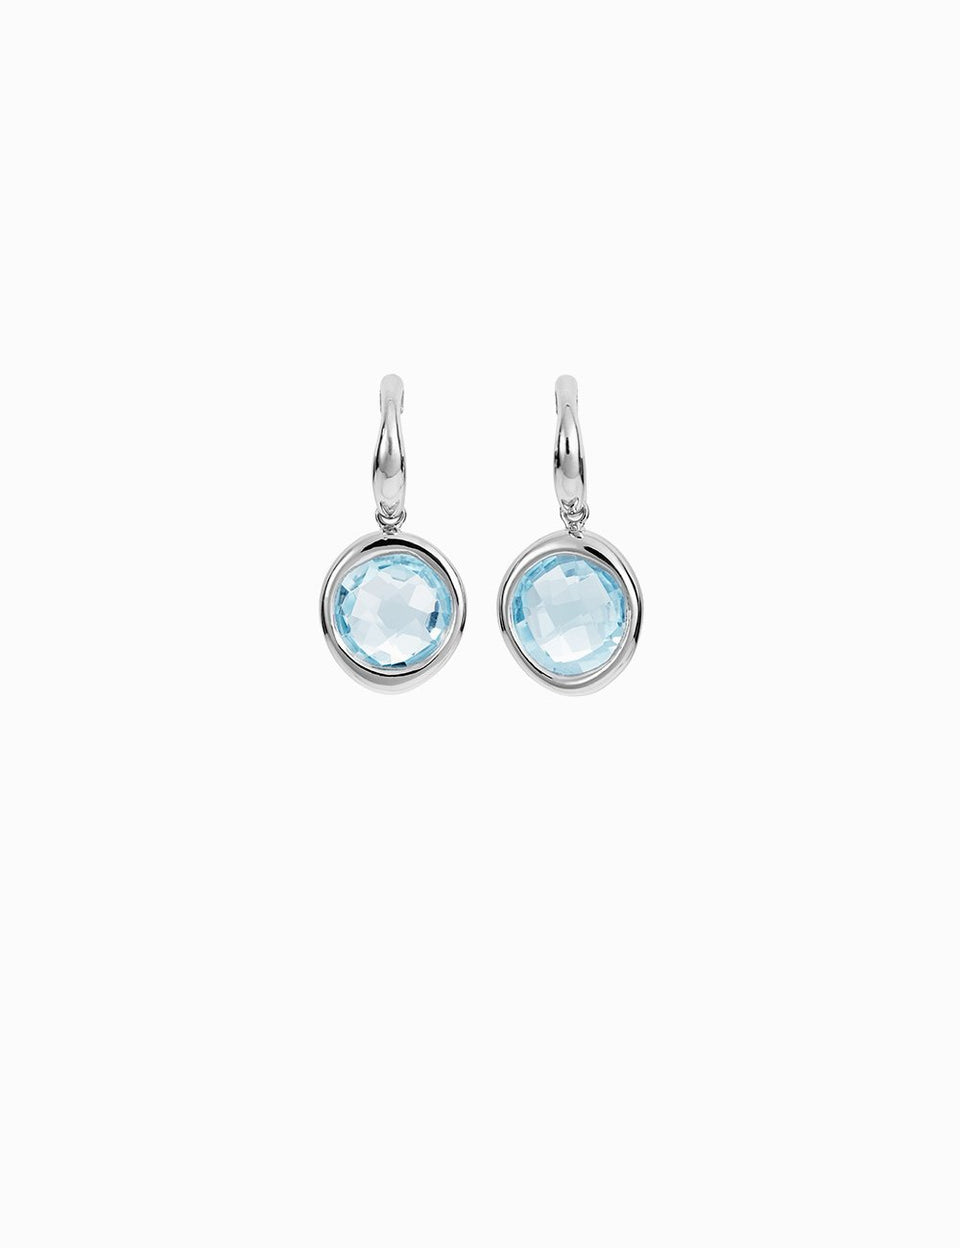 White gold earrings with two natural blue topaz handmade by Roosik & Co